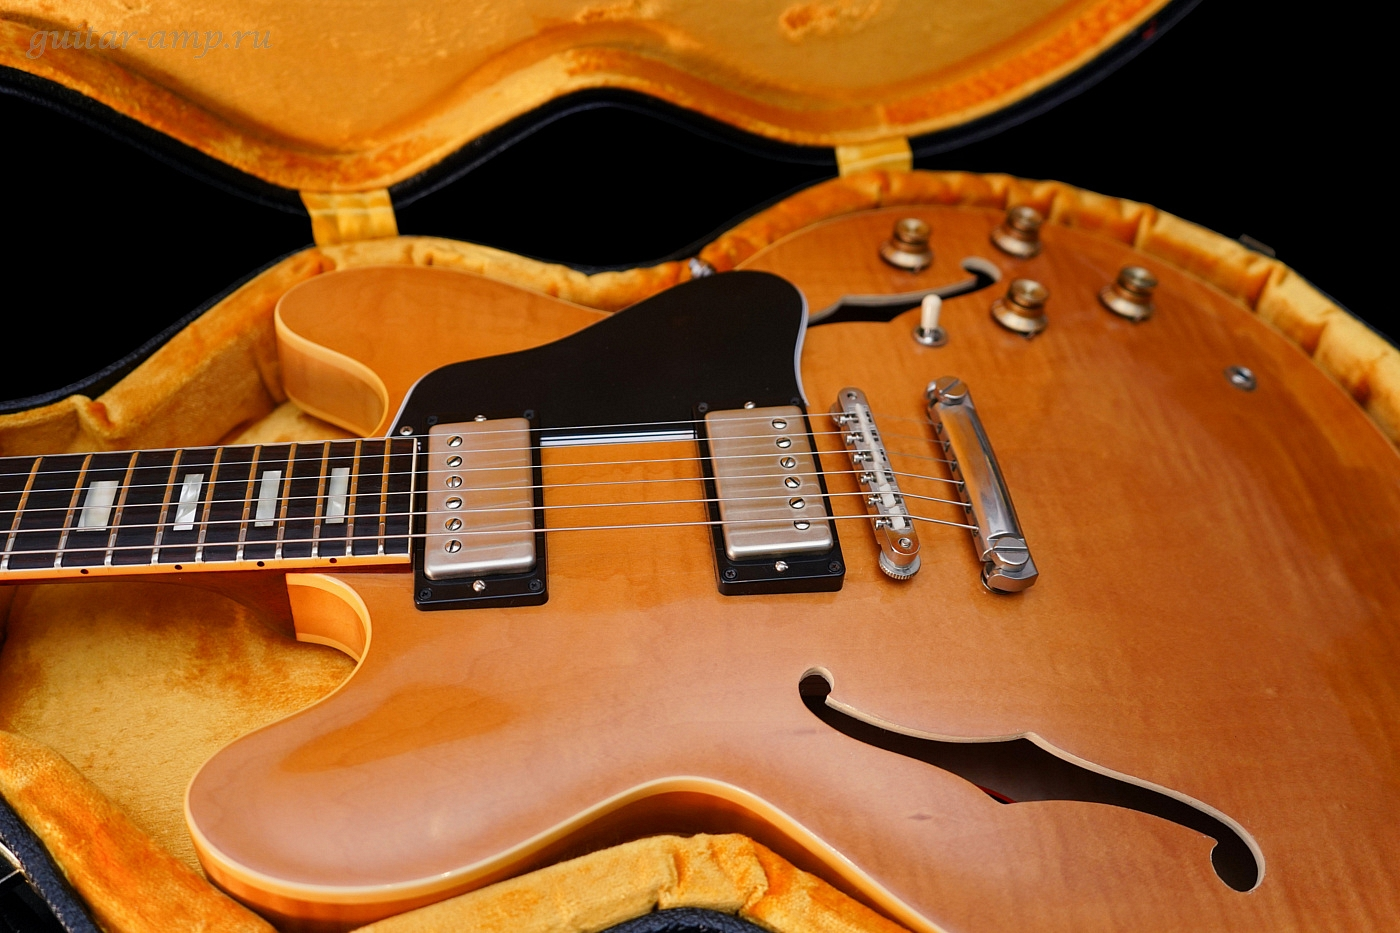 Gibson ES-335 TD Block Inlay Custom Shop 1963 Historic Reissue VOS Flamed Top Limited Run Rare 2015